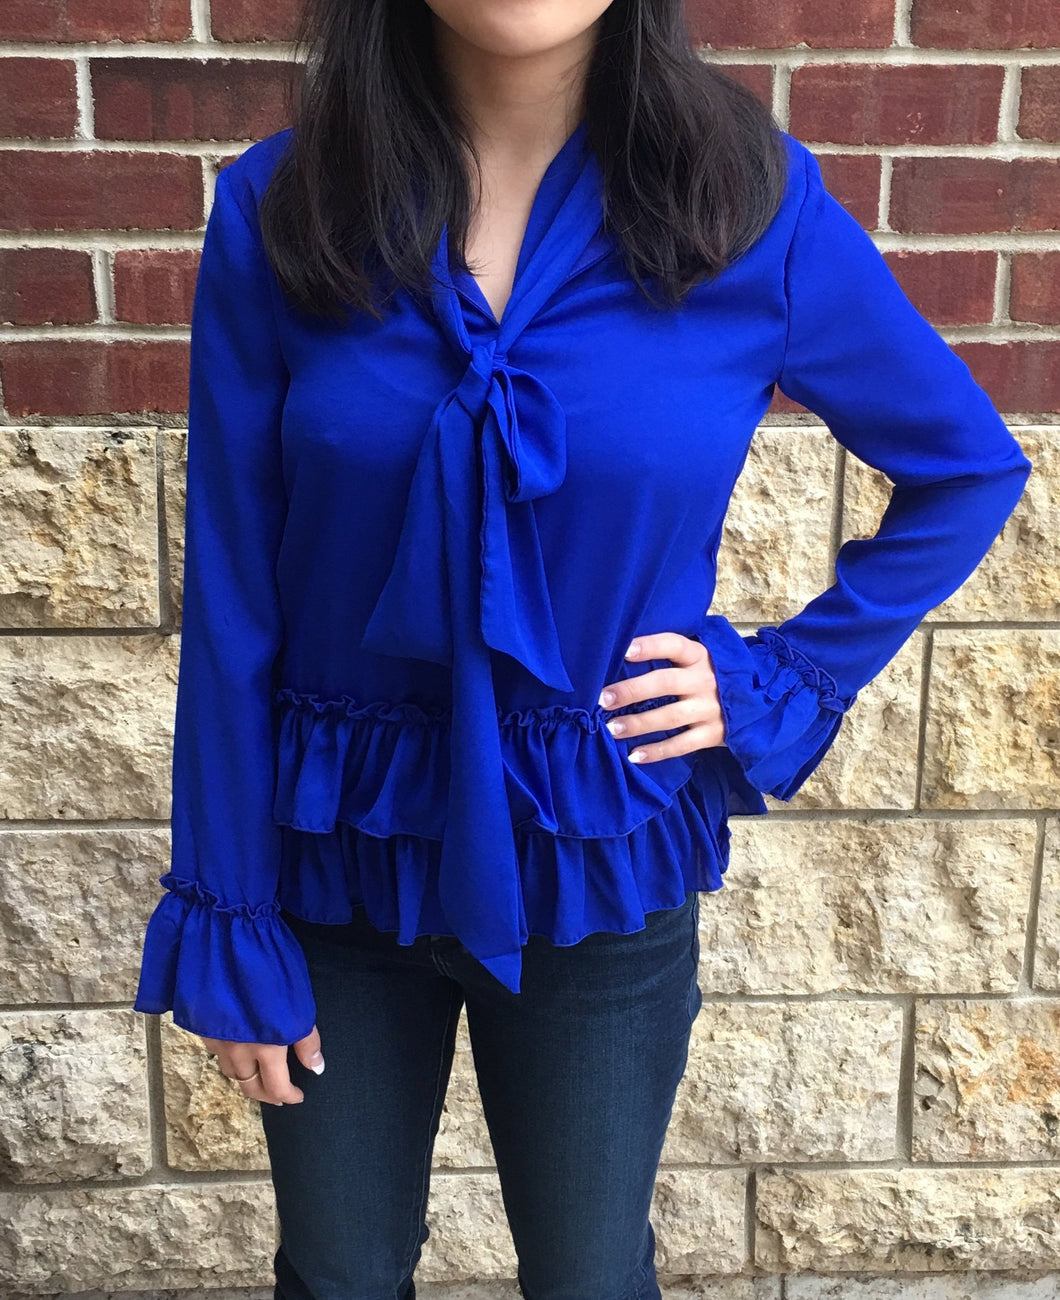 VIBRANT ROYAL BLUE TOP